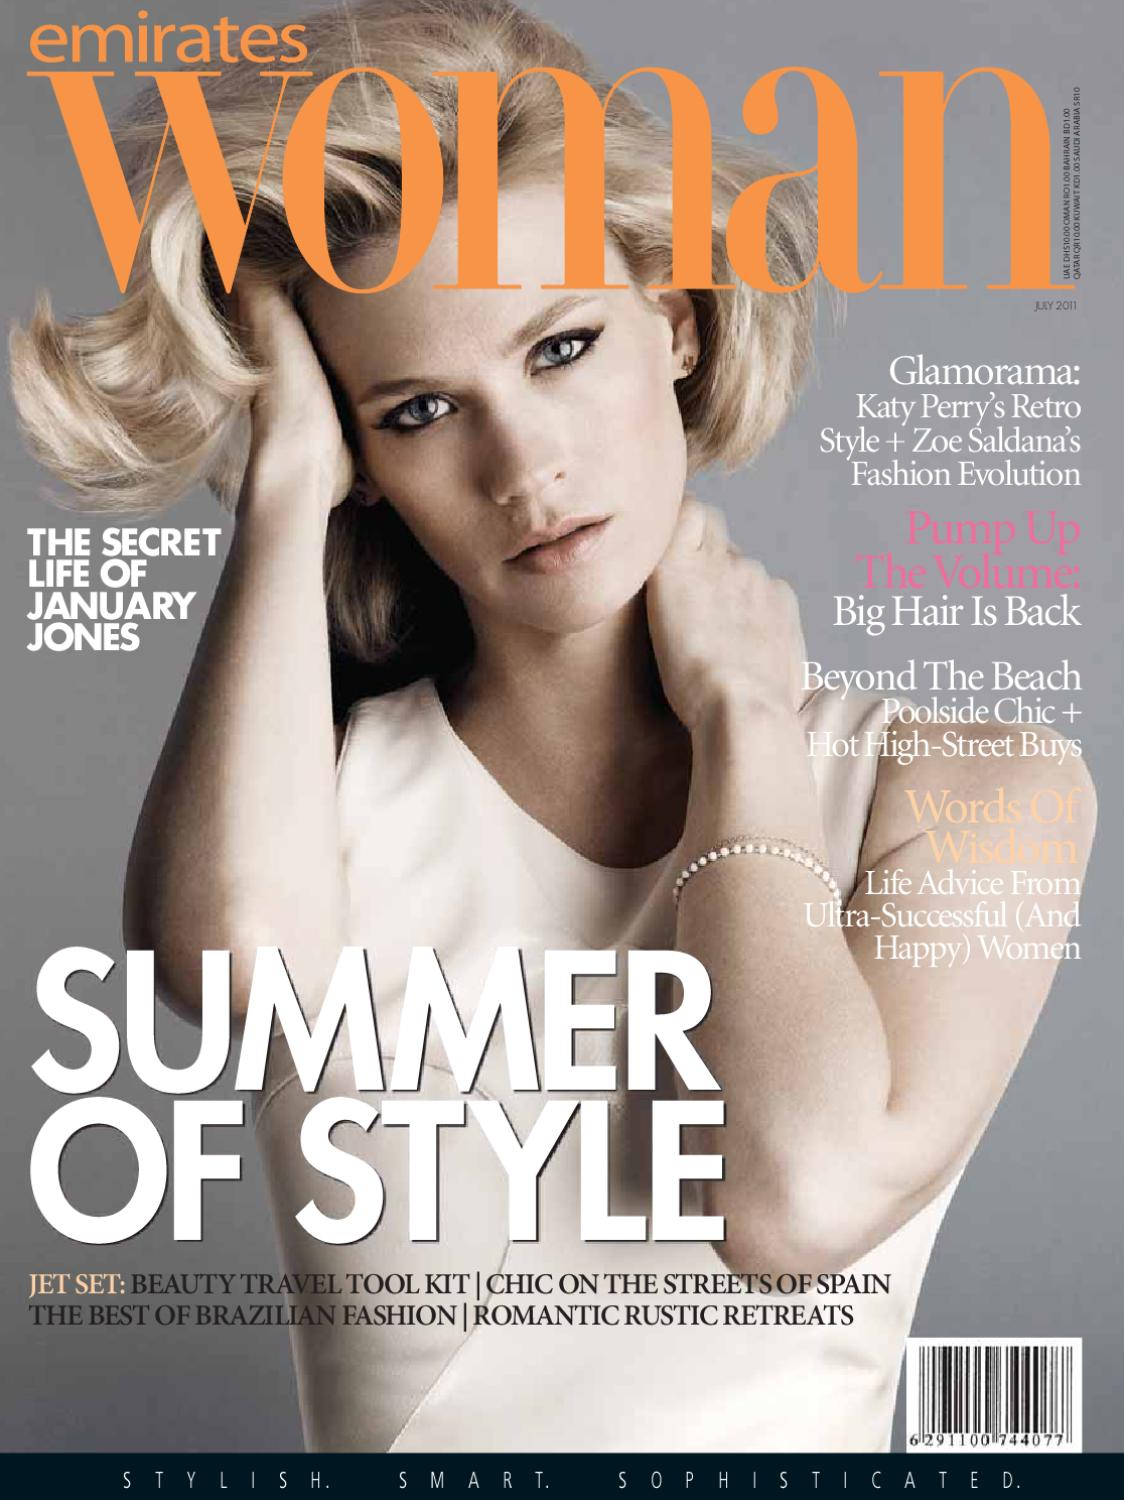 99476545d0 Emirates Woman July 2011 by Motivate Publishing - issuu